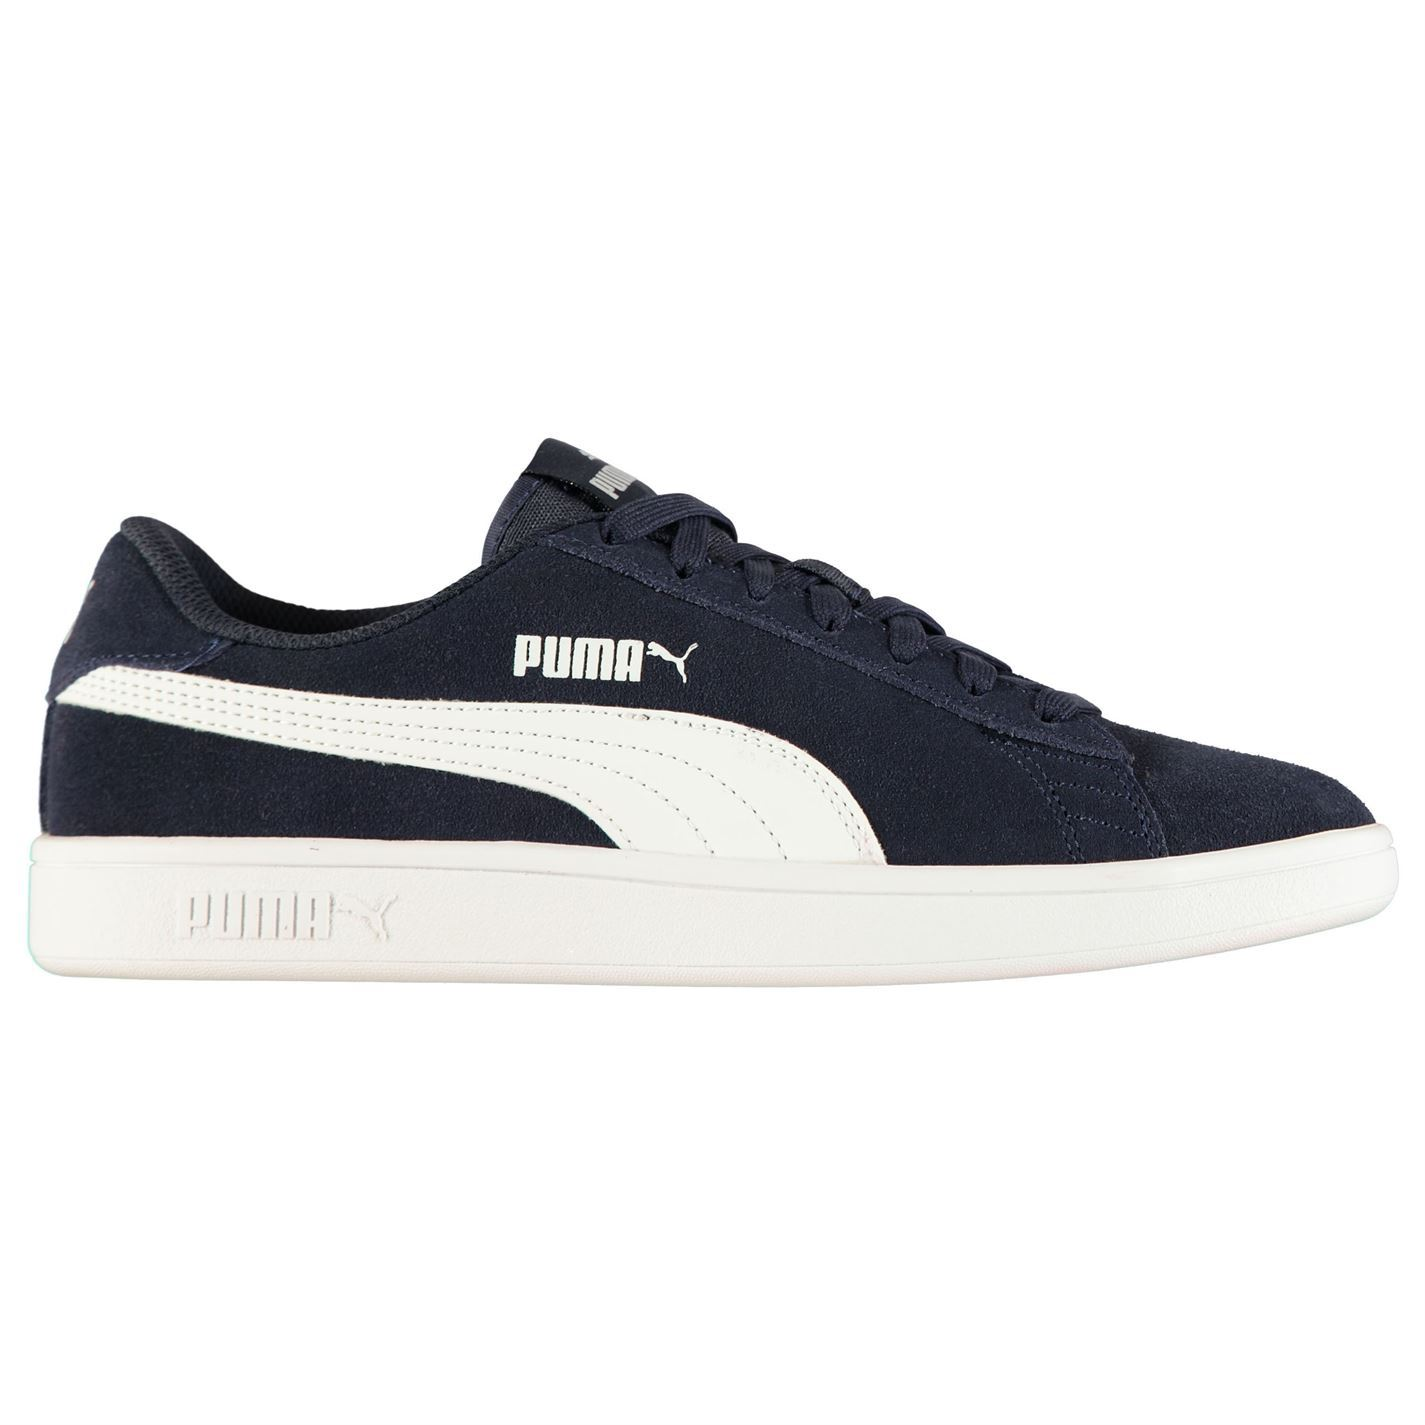 Puma-Smash-V2-Suede-Trainers-Mens-Shoes-Sneakers-Athleisure-Footwear thumbnail 12